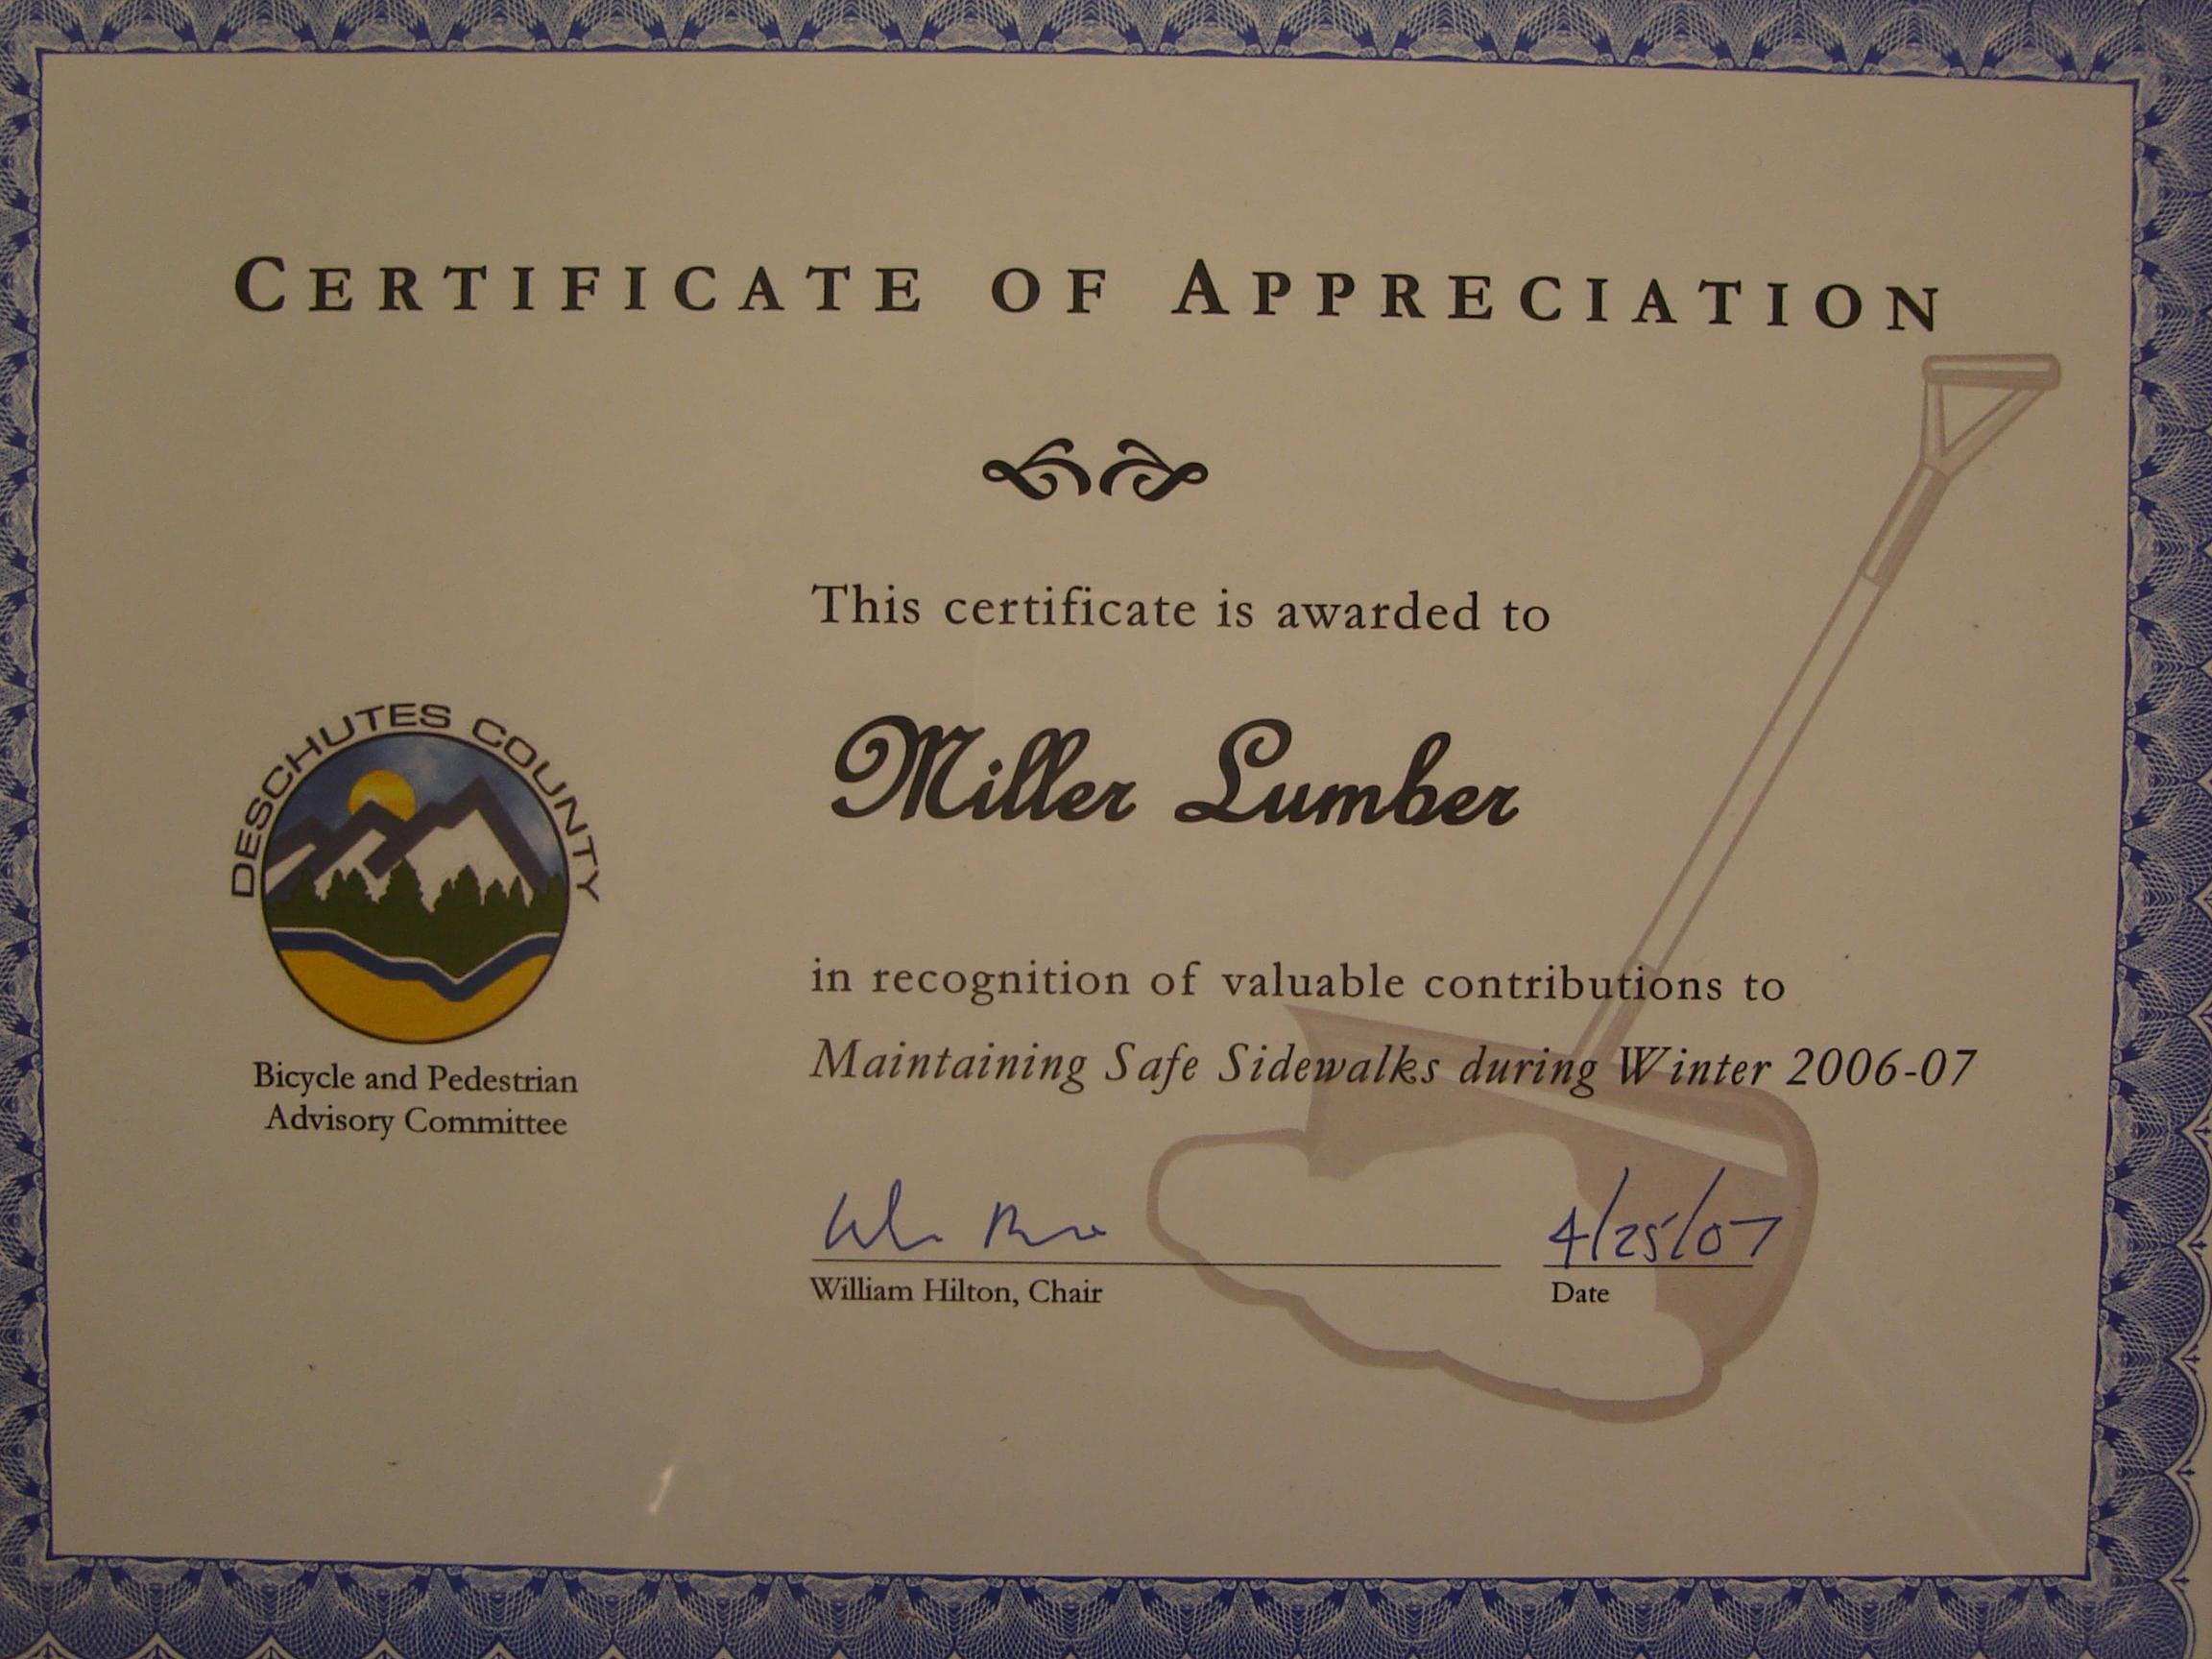 During the winter of 2006-2007, Miller Lumber contributed to Deschutes County to help maintain safe sidewalks.